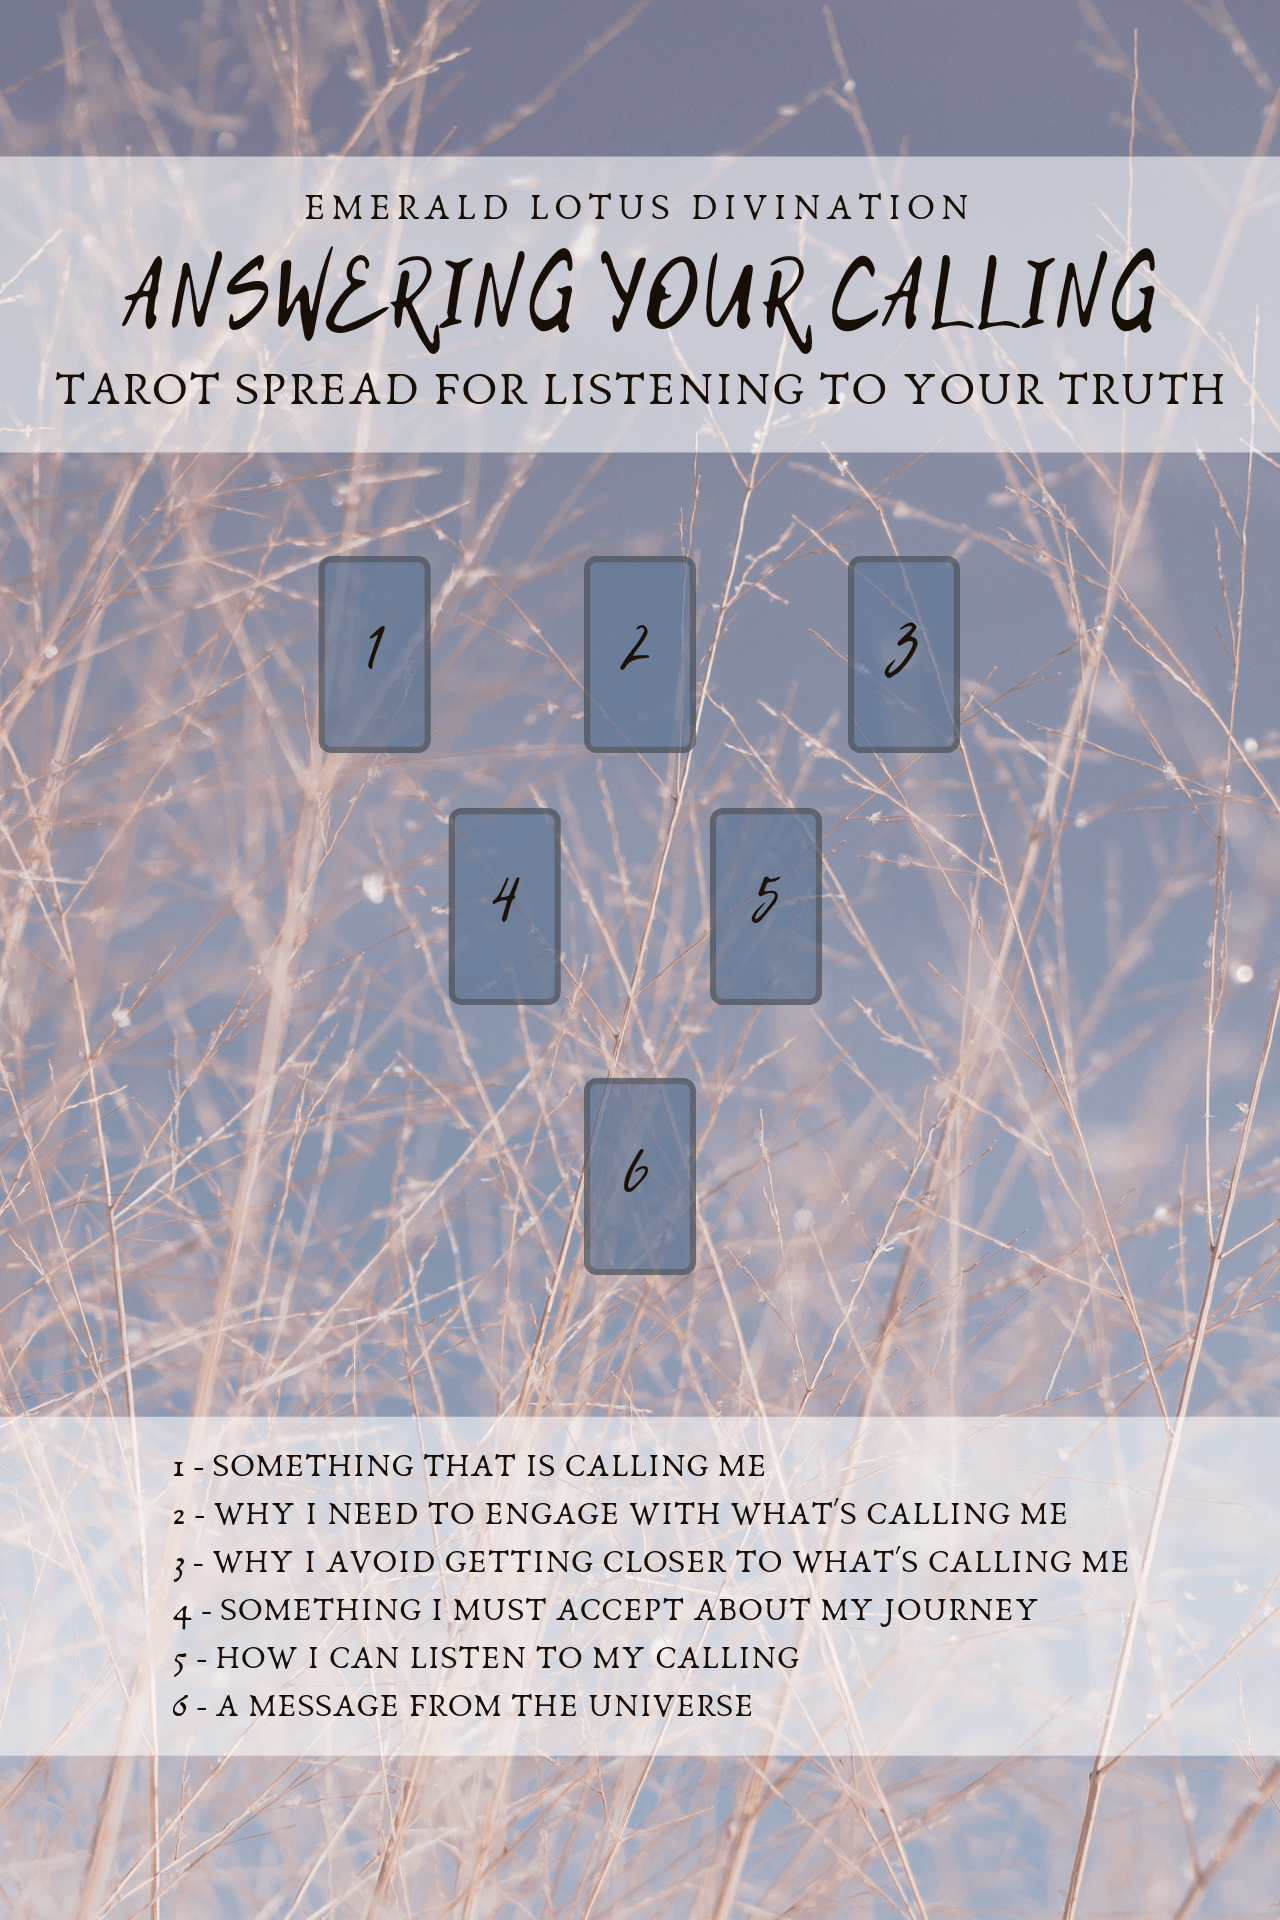 Answering-Your-Calling-Tarot-Spread-1.png